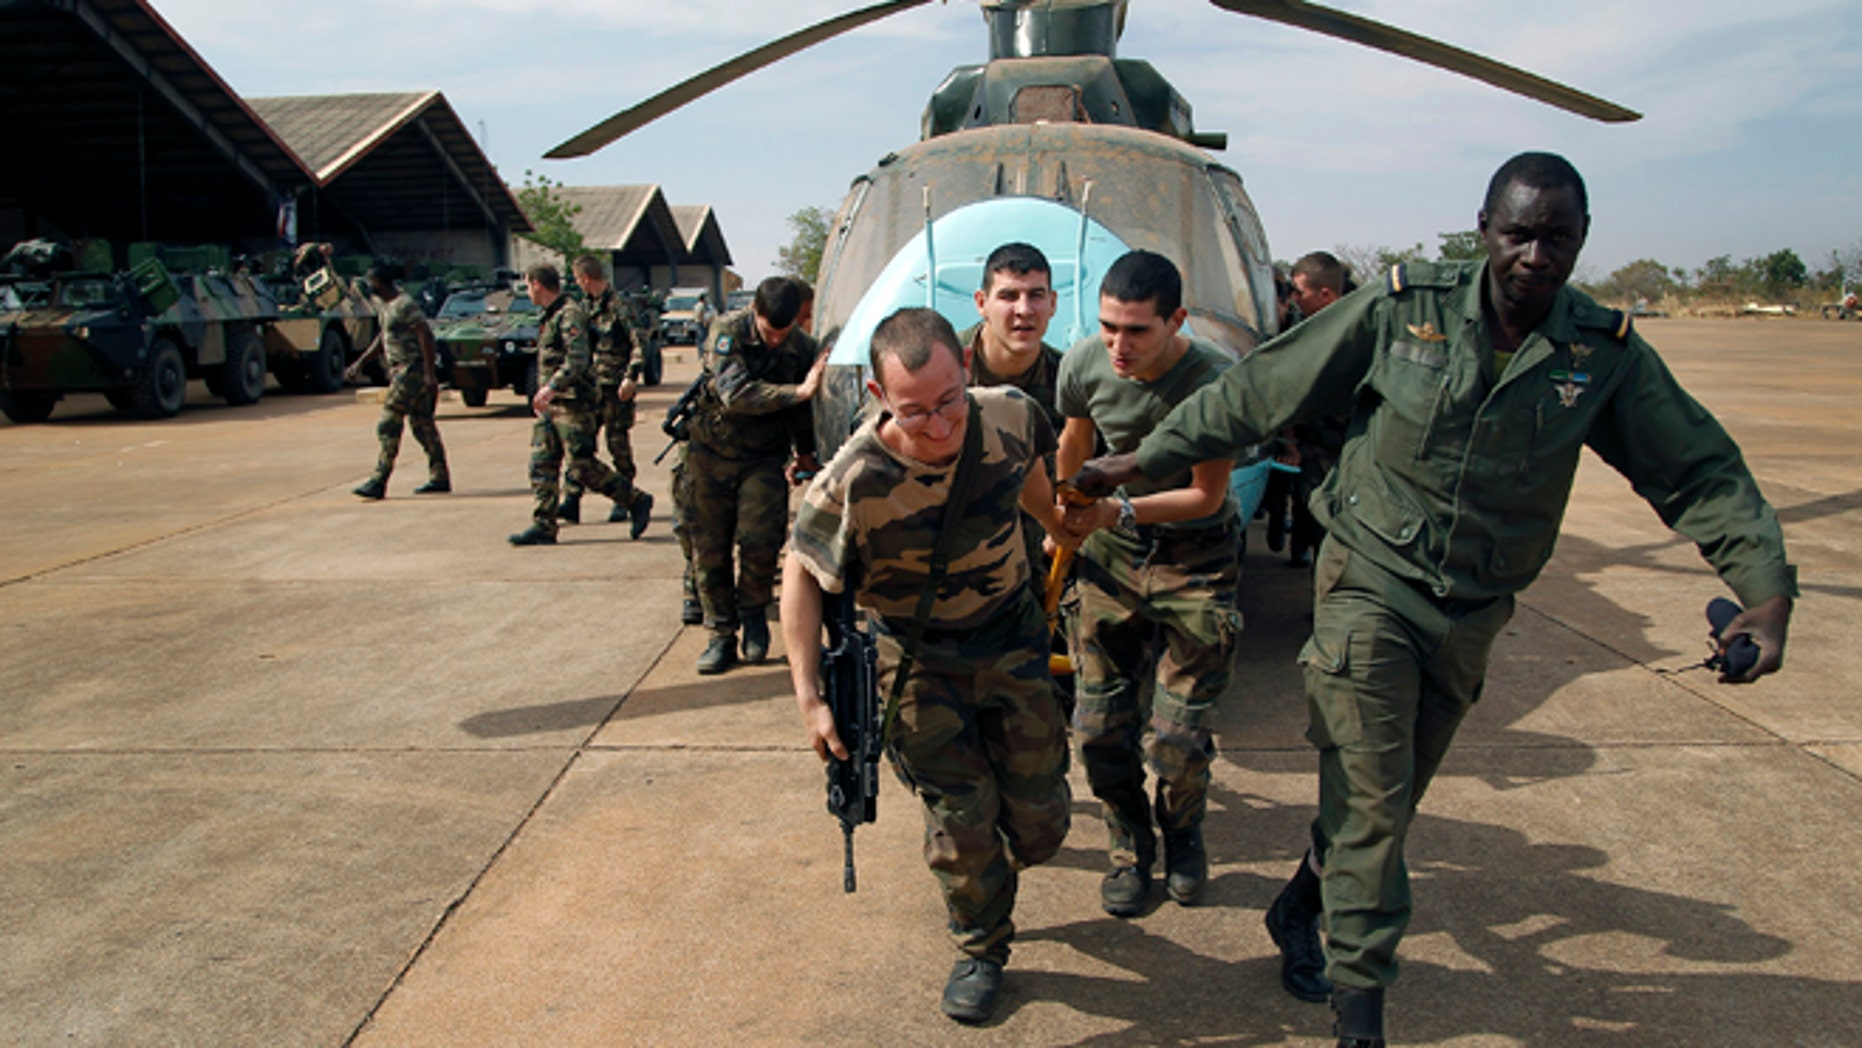 Jan. 15. 2013: Malian soldiers helped by French troops, move a broken helicopter out a hangar to make room for more incoming troops  at Bamako's airport.